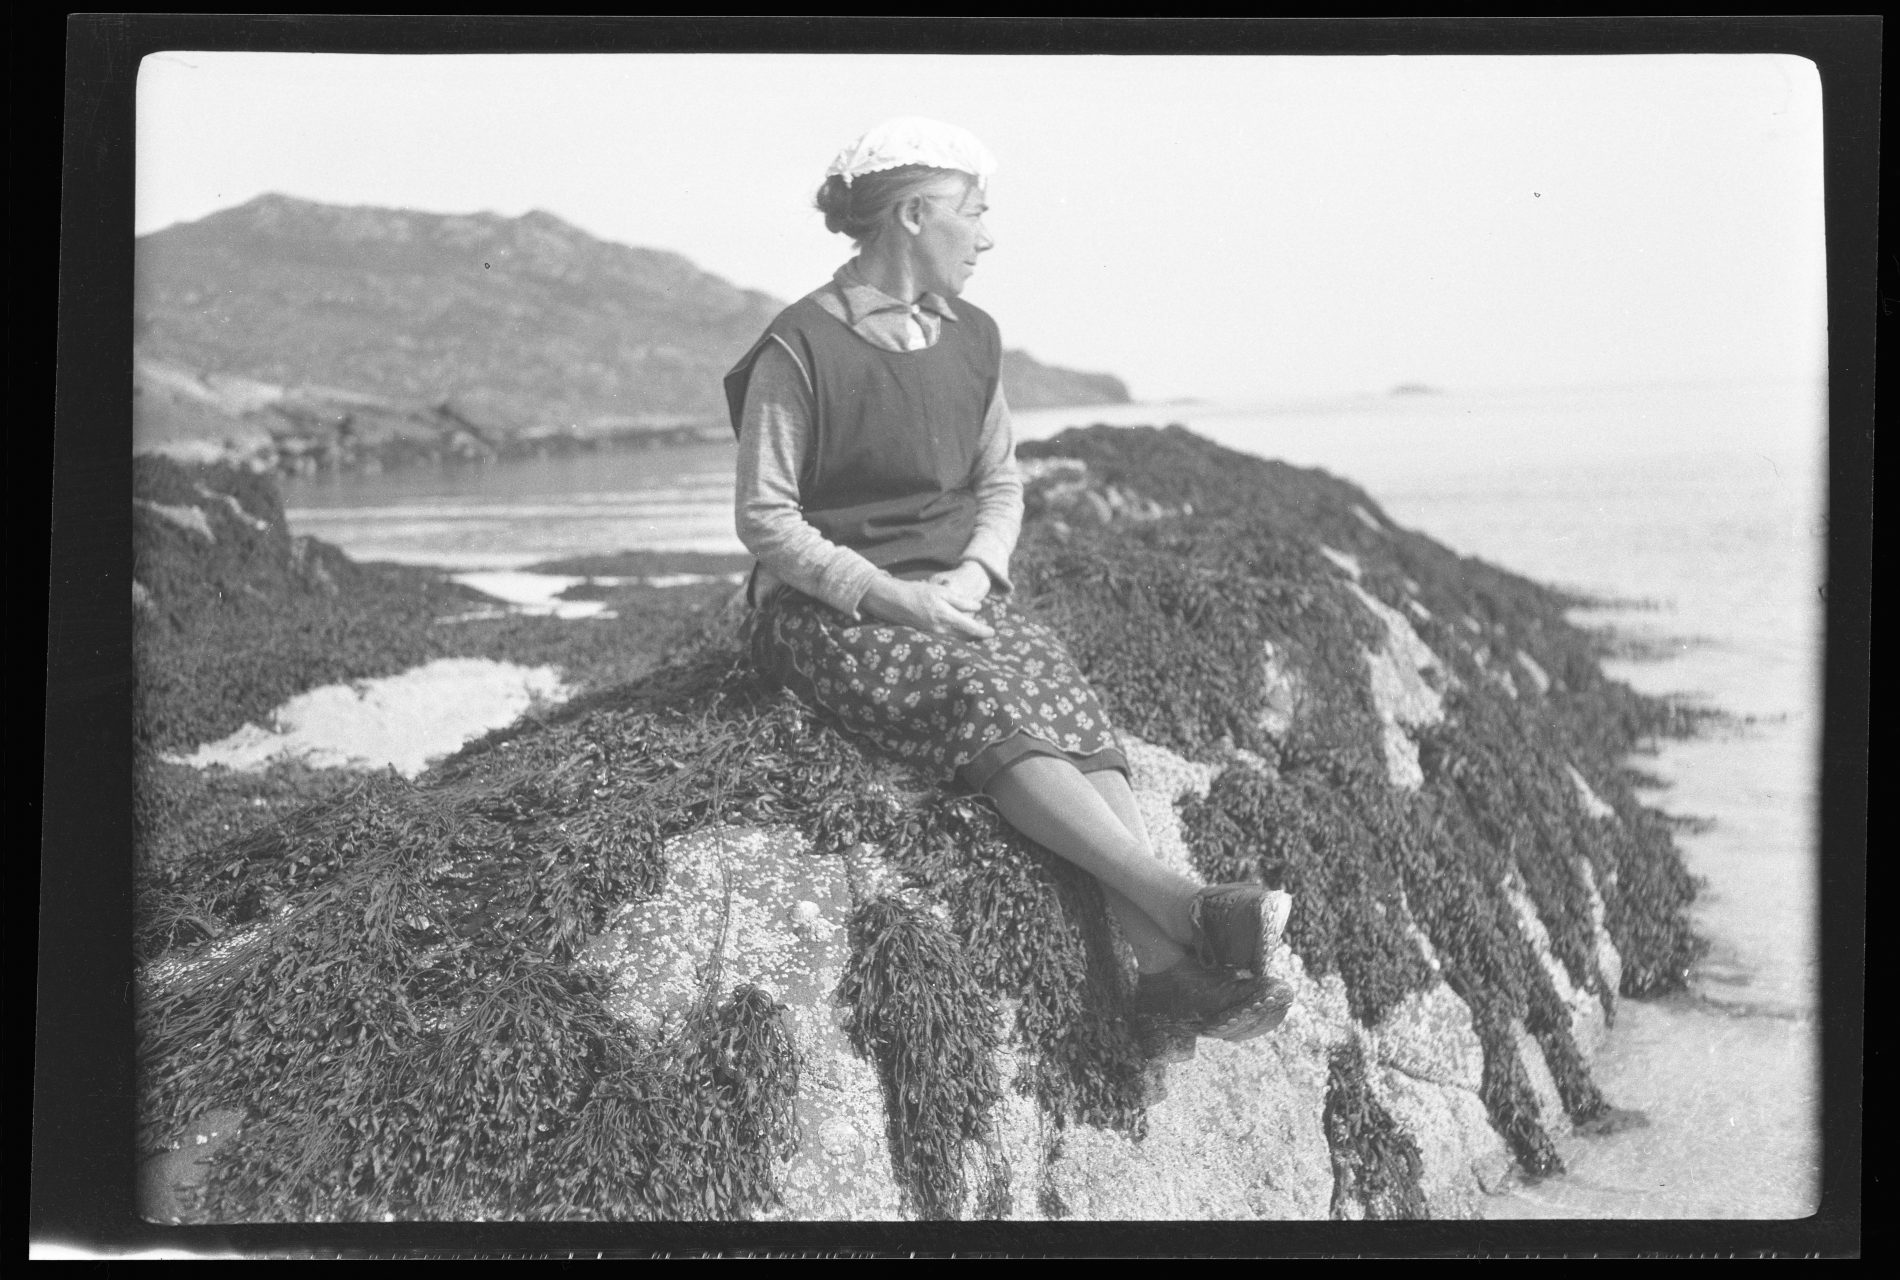 Màiri Anndra (Màiri MacRae) on South Uist, photographed by Margaret Fay Shaw in the 1930s. Credit: ©National Trust for Scotland, Canna House